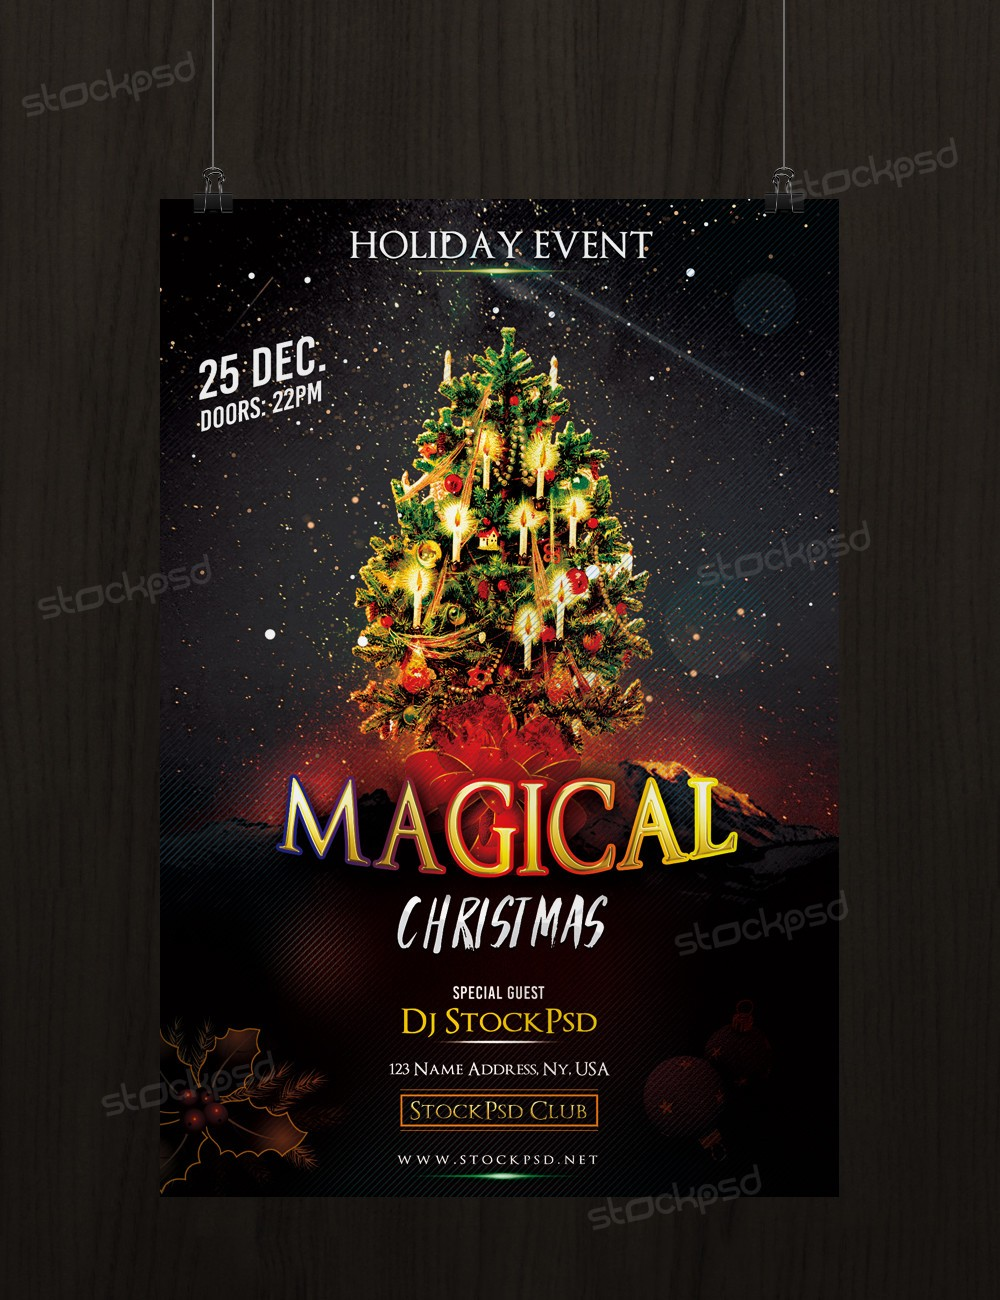 Download Magical Christmas Free Psd Flyer Template Stockpsd